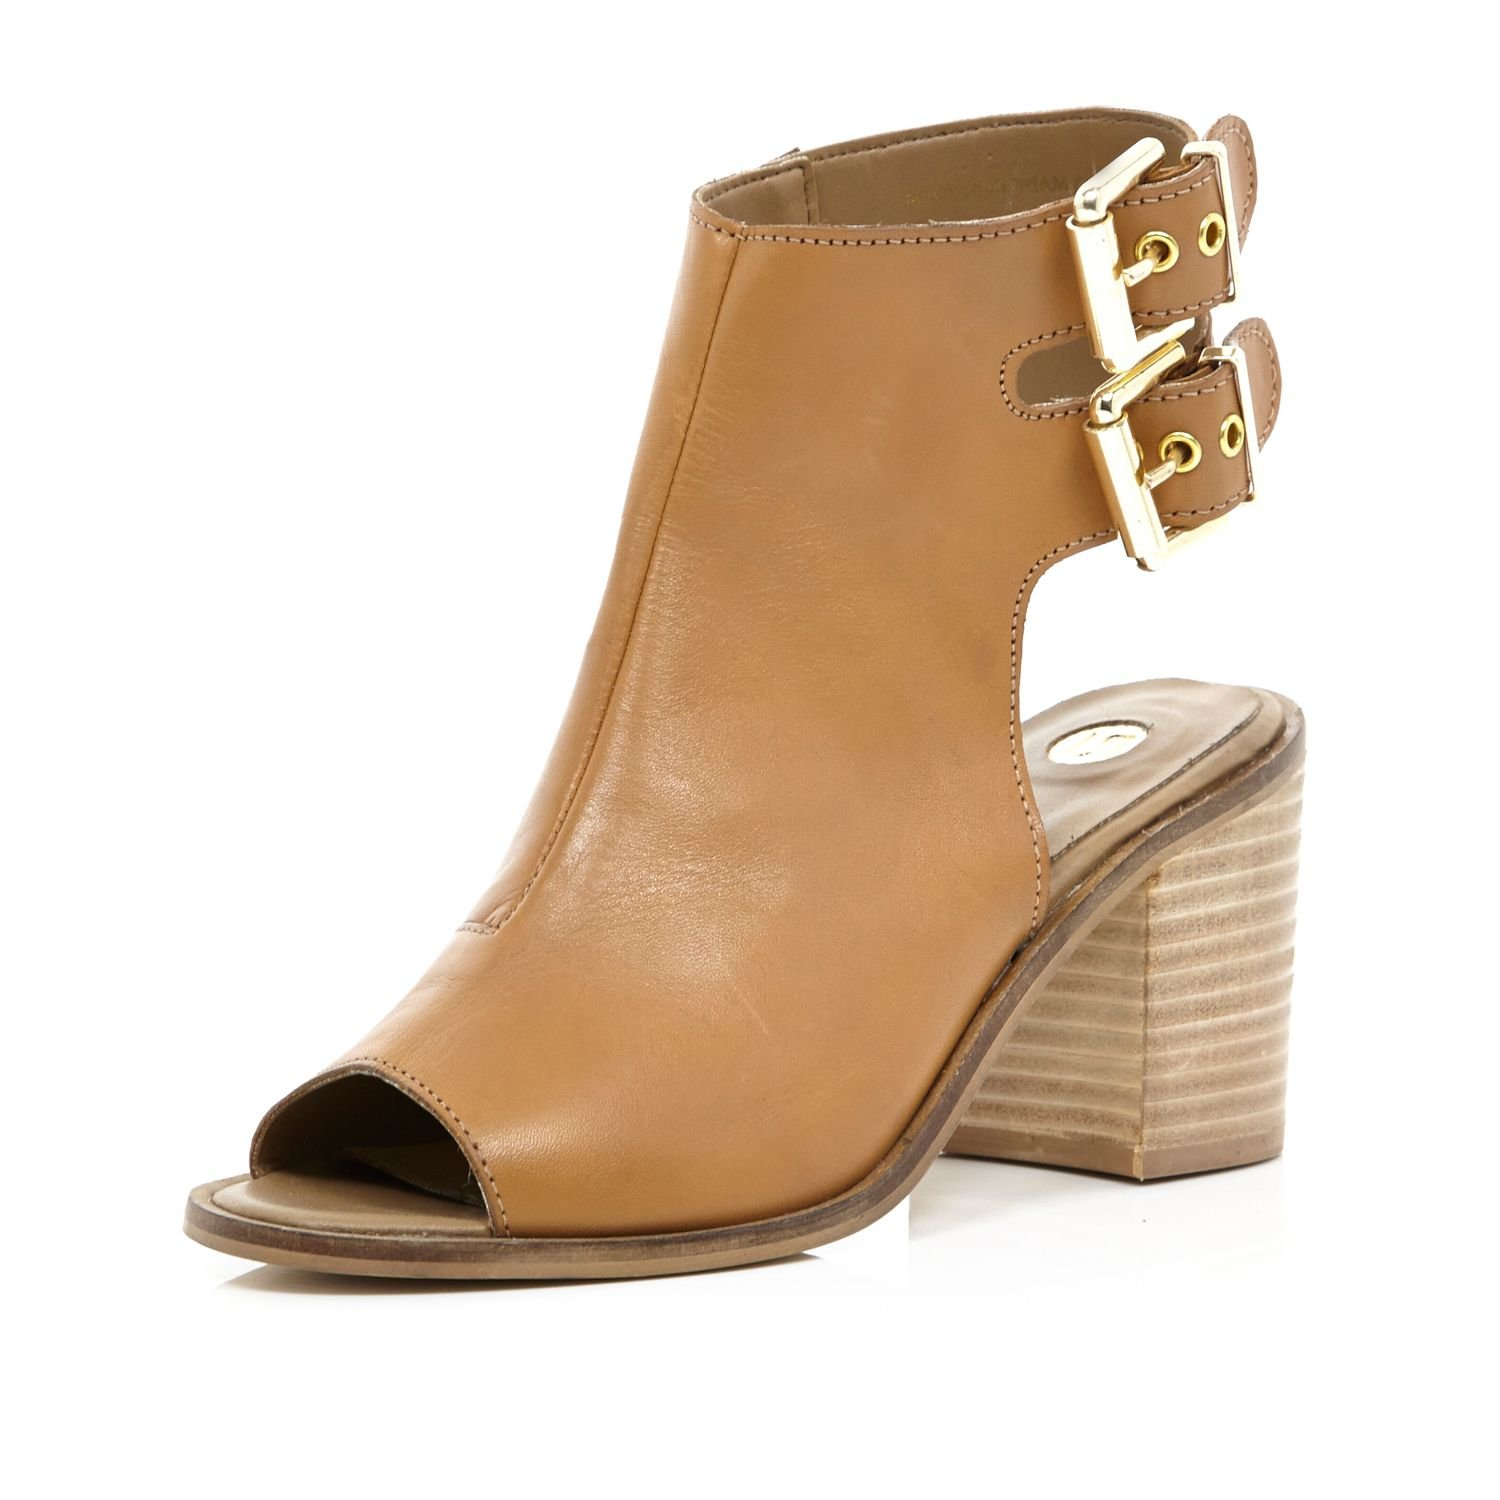 d9926426bbd River Island Tan Cut Out Block Heel Shoe Boots in Brown - Lyst